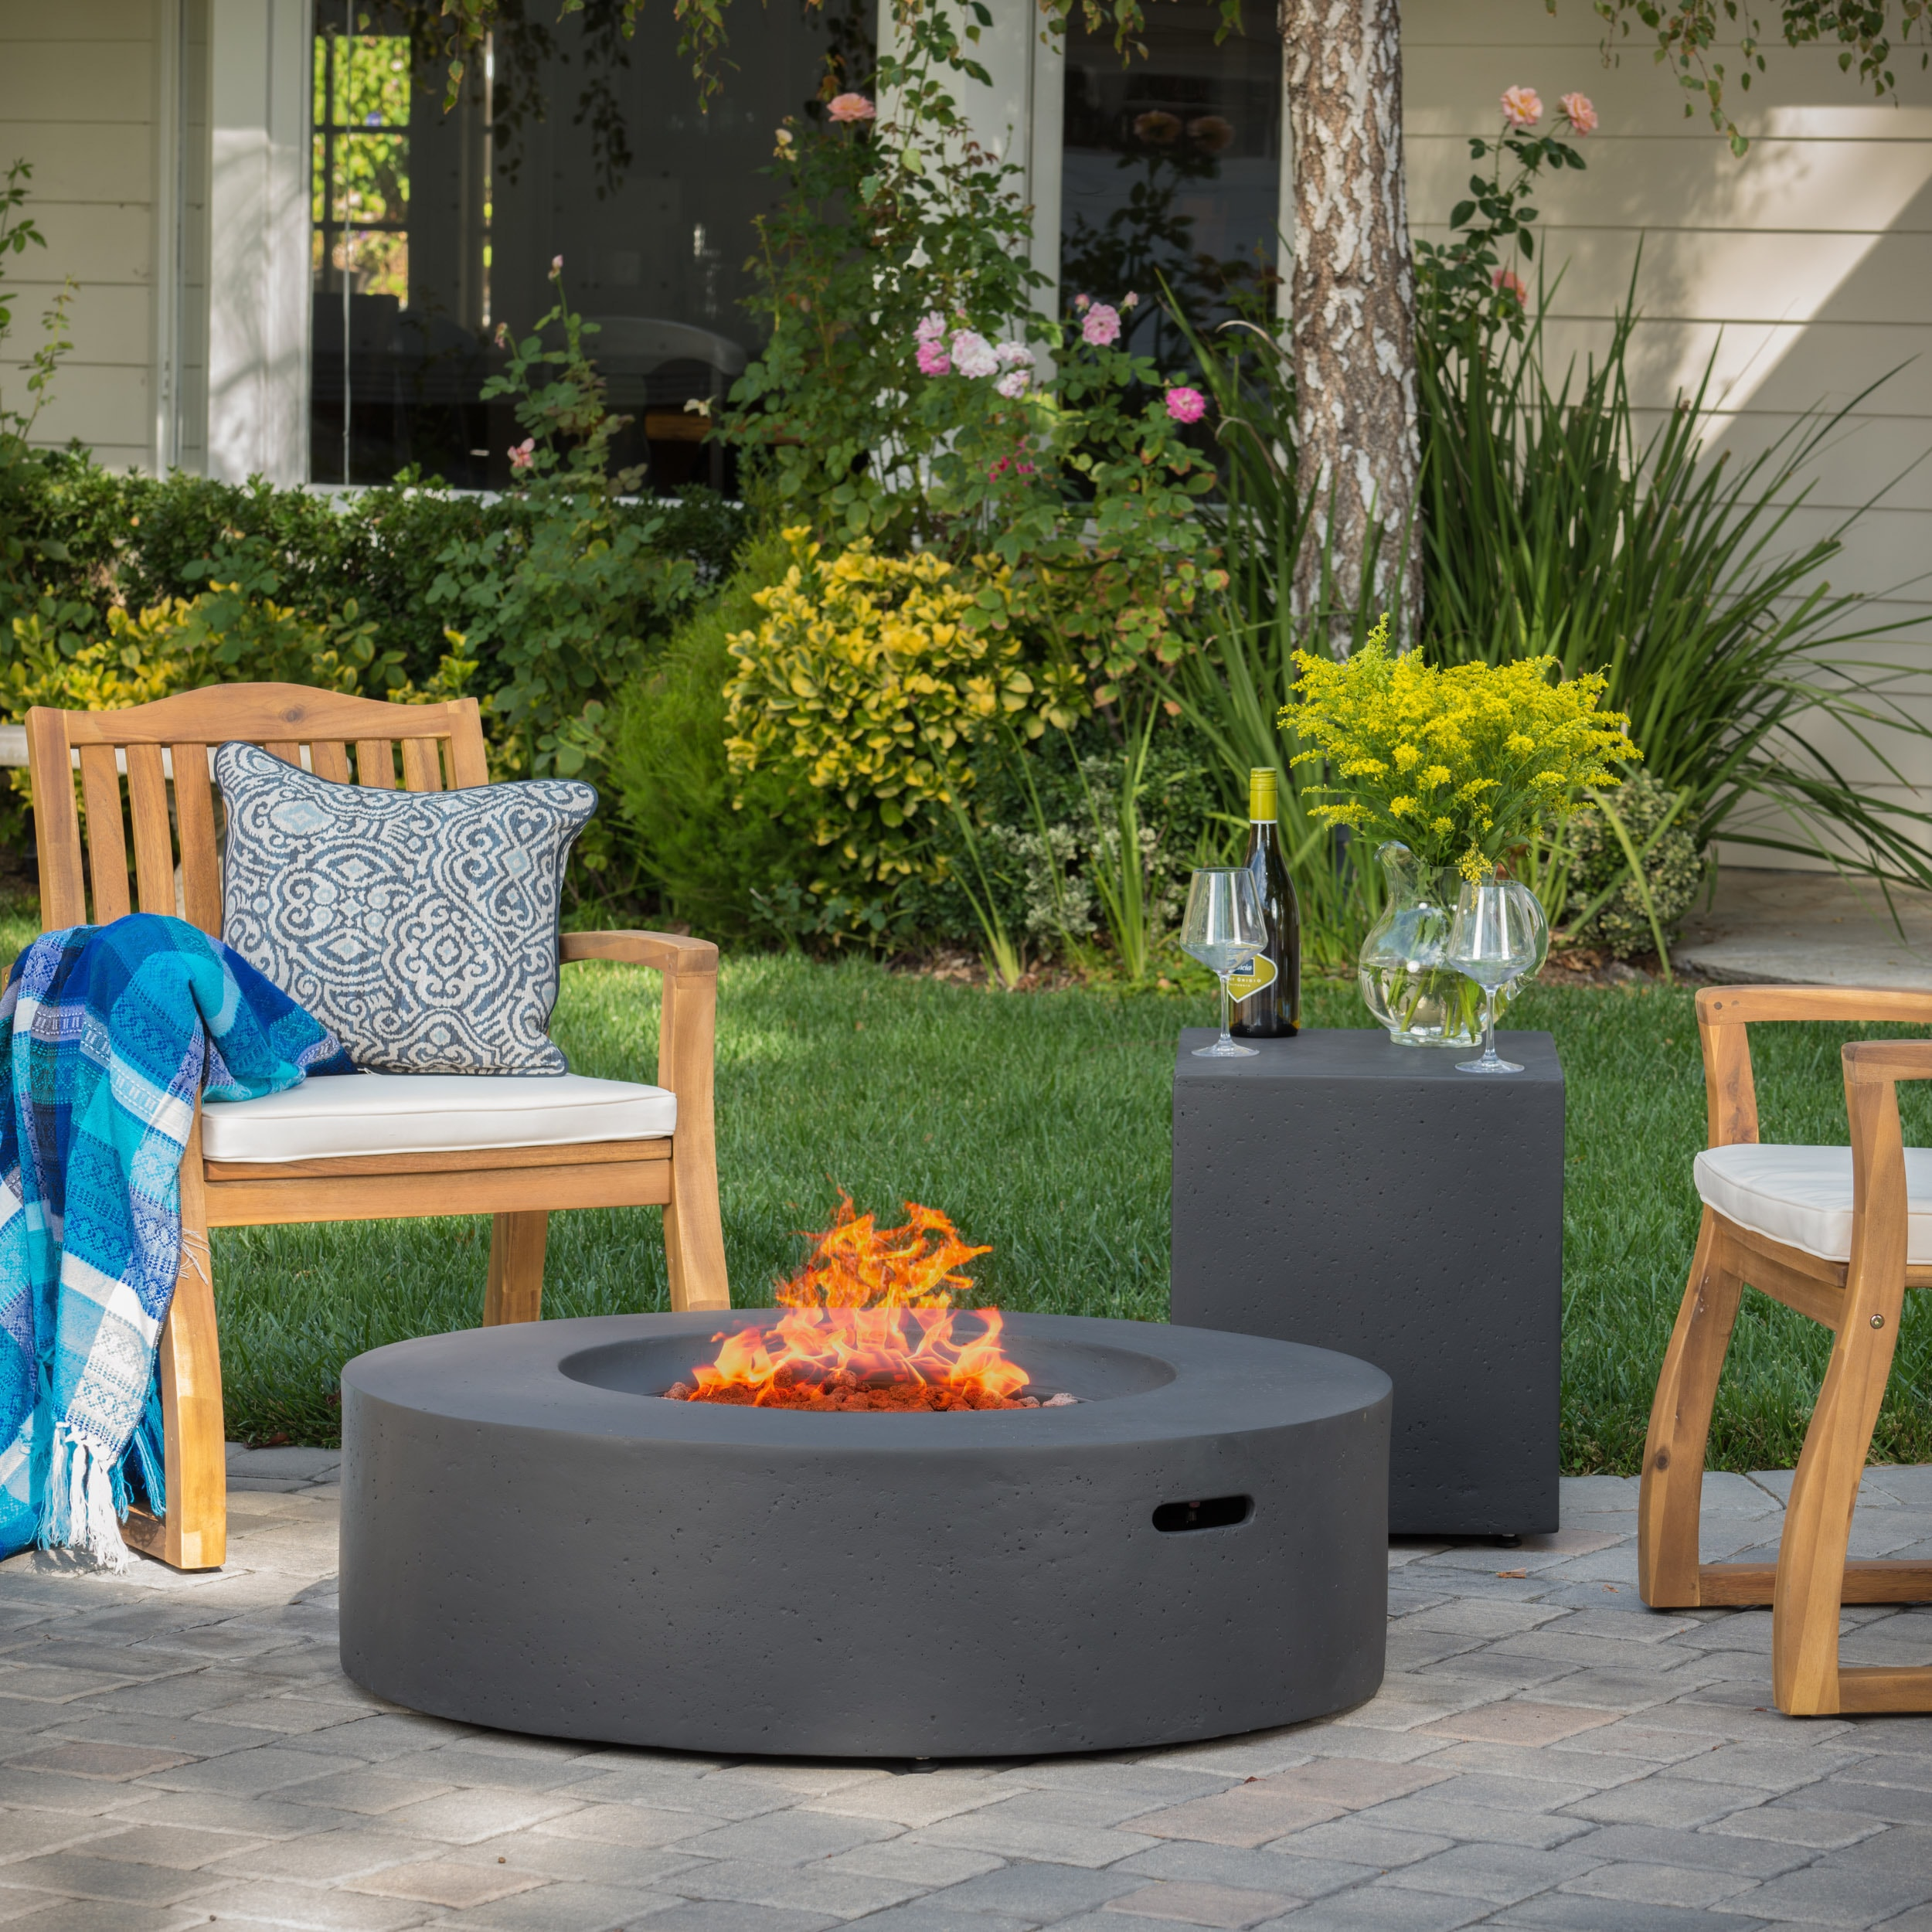 Santos Outdoor Circular Propane Fire Pit Table with Tank ...